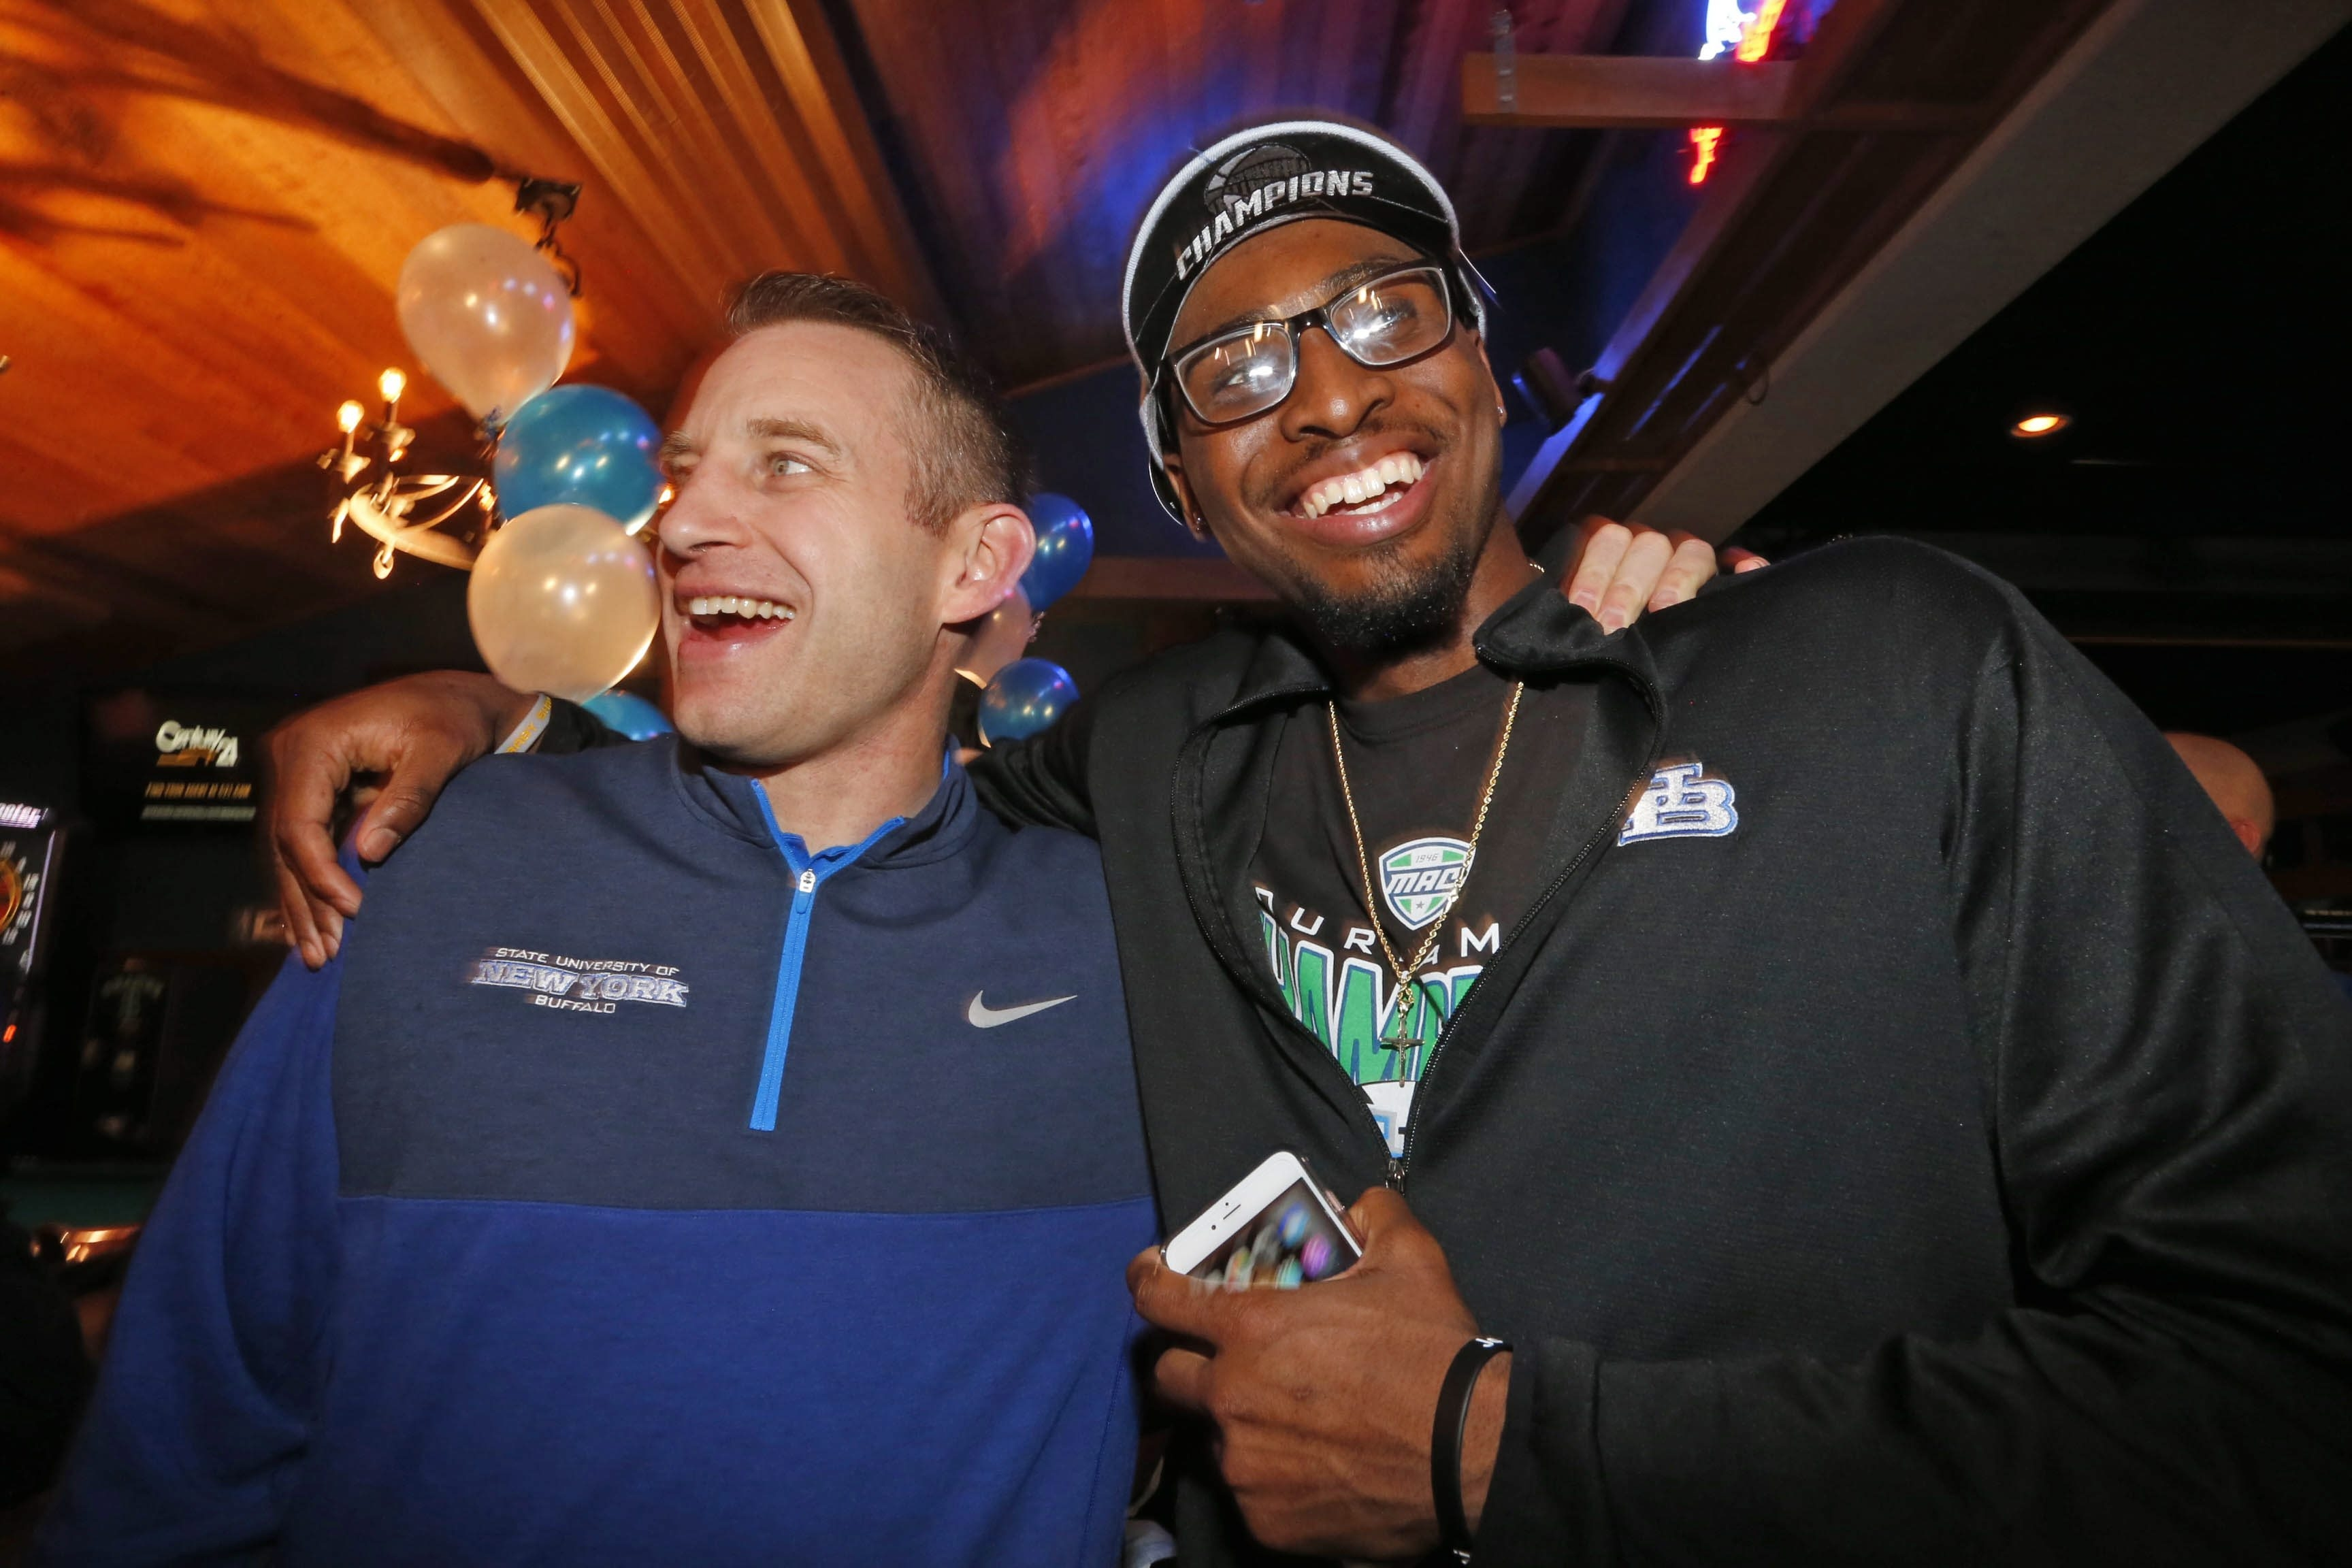 UB men's basketball coach Nate Oats and player Blake Hamilton celebrate the announcement that the Bulls will play Miami in their opening NCAA game.